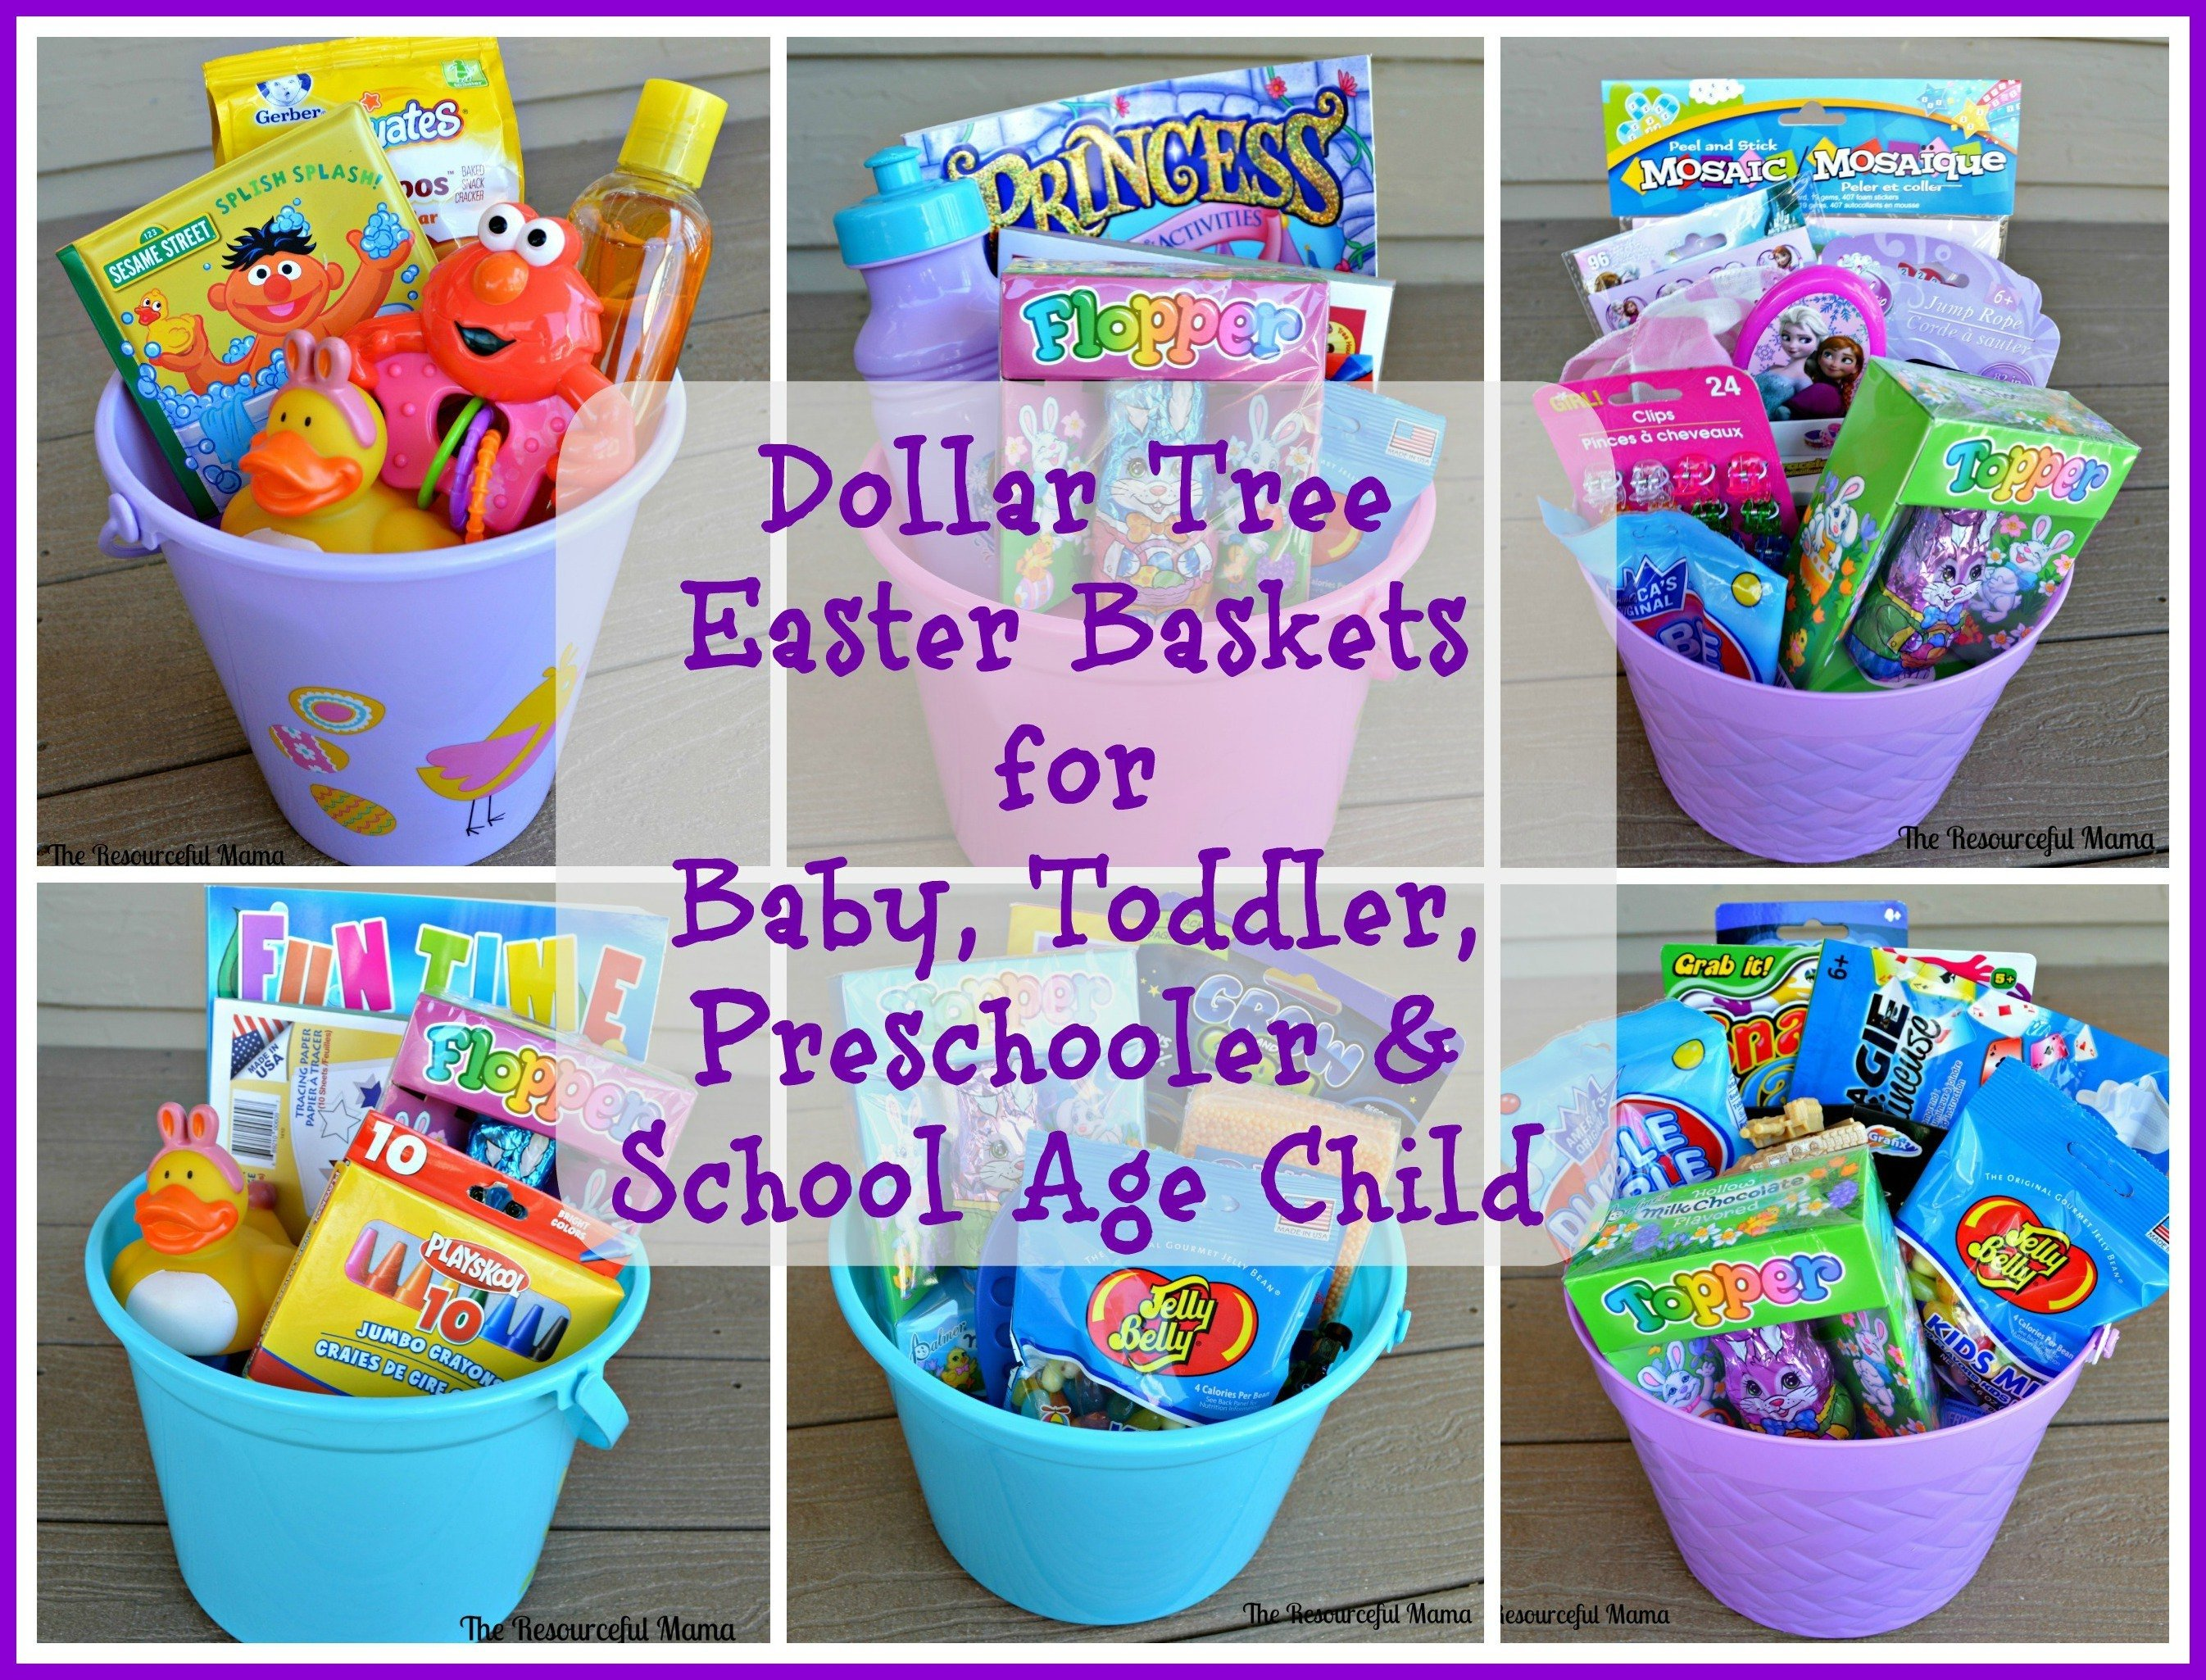 10 Great Easter Basket Ideas For Babies dollar tree easter baskets the resourceful mama 2 2021